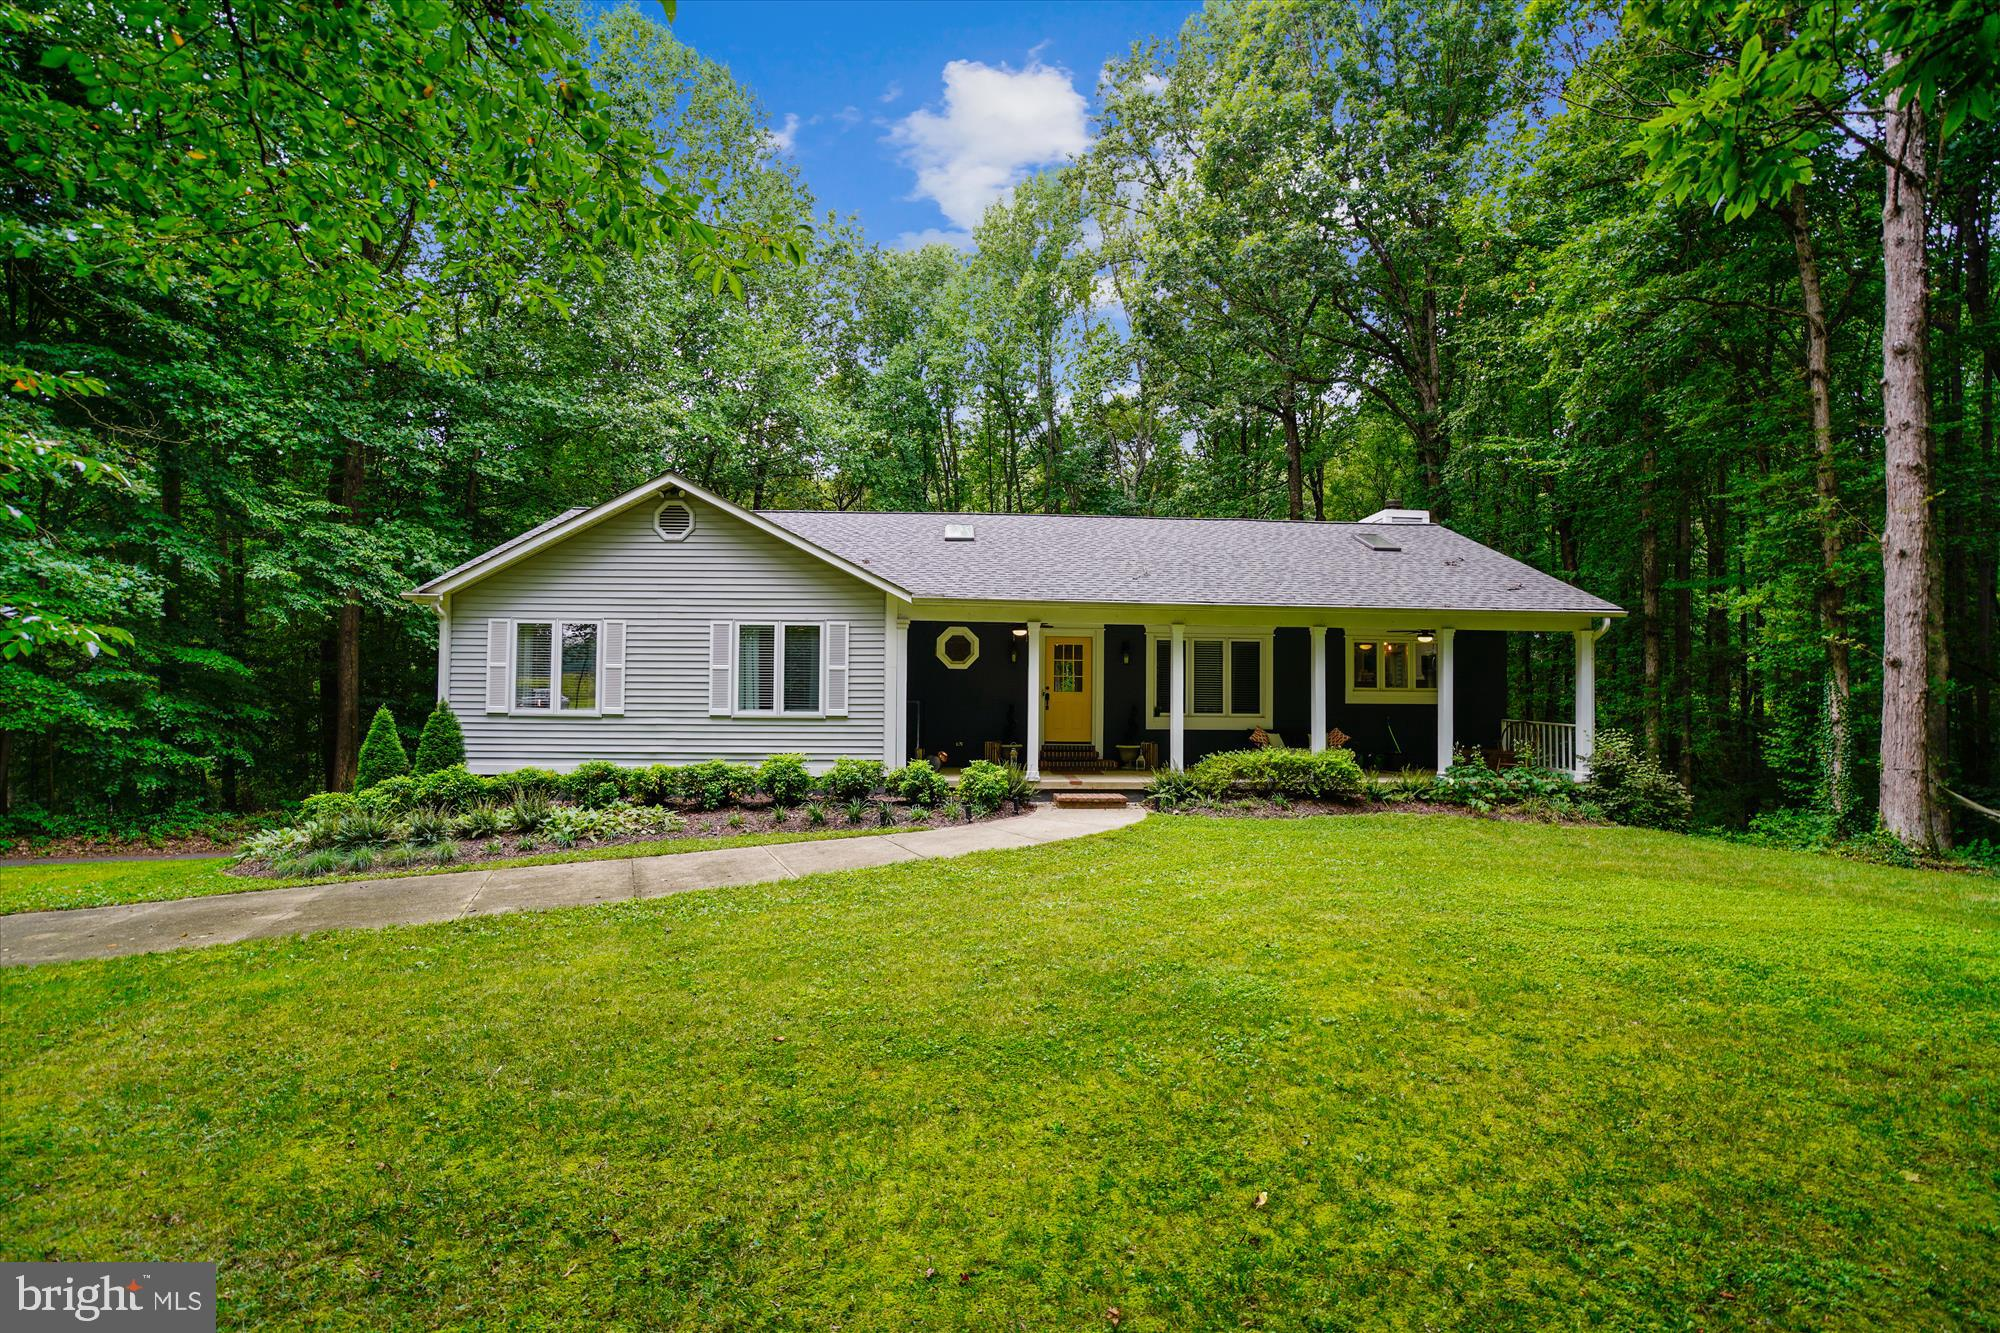 OPEN HOUSE SAT. 9/5 1-3 PM Straight out of Country living! This is the best location just over the Davidsonville line, so convenient to Rt 50, less than 1/2 mile to the Exit 16 Rt  Davidsonville Rt. 424 exit.  Located in the Desirable brand new Crofton High school district! Surrounded by nature this small enclave of custom built homes on large lots, Bottners Woods offers privacy between neighboring homes.  Terrific curb appeal this 4 + acre  Magnolia farm stylish ranch home  features a welcoming front porch large enough to enjoy your morning coffee or afternoon lemonade. Step inside and enjoy the amazing natural light filled renovated open living spaces.  Carefully thought out renovations include dark stained oak hardwood flooring on the main level, an open foyer, fabulous Gourmet white timeless kitchen featuring soaring ceilings, shiny stainless appliances, sub way tiled walls, leathered granite countertops and attractive  upgraded lighting. French doors into the library/study, high baseboard trim, upgraded door hardware are small items that make a difference.  The primary suite overlooks the back yard and woods beyond. The primary ensuite includes a walk in closet featuring handsome custom closet organizers. Impressive  with timeless appeal the primary bath renovation includes a frameless sub way tiled tiled shower featuring  a soaking slipper tub and dual sinks, one topped with Carrara marble. Enjoy a spa like relaxing retreat in the privacy of your own home. All three baths have been tastefully updated. The walk out lower level is perfect for the youngsters or visiting guests. Notice the custom trim work in the hallways leading to the 4th bedroom and rec/media room.  A secret sweet play house exists under the staircase.  A newer super efficient hot water heater keeps the utility bill at a minimum.  Recent roof replacement, gutters, gutter guards and Trane seer 14 furnace installed  for peace of mind. This home is move in ready not much to do but un pack and  enj